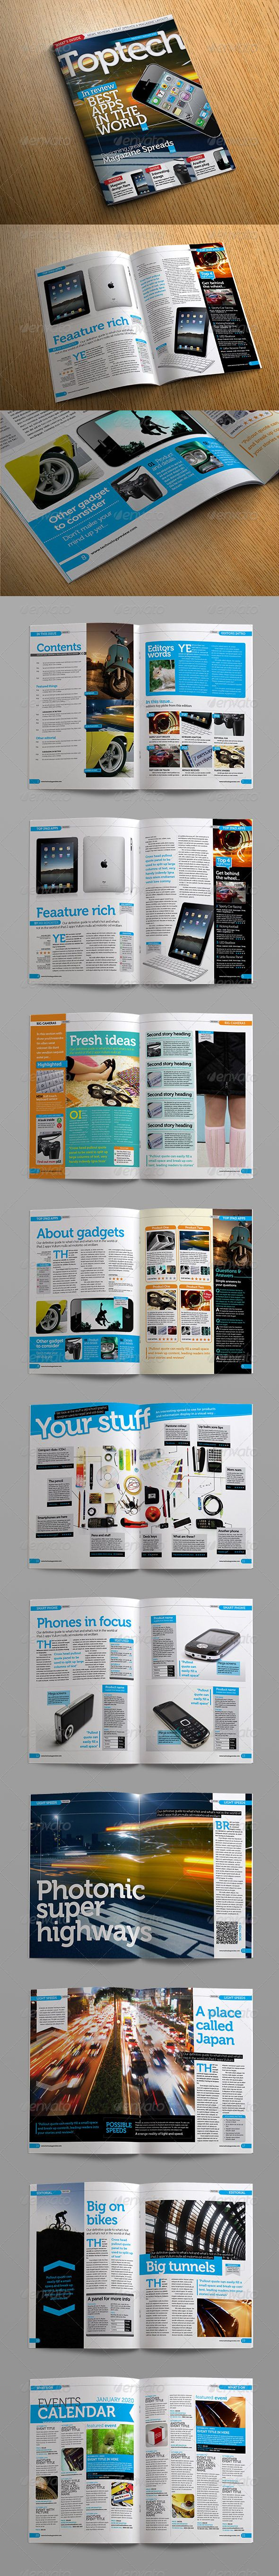 Tech Reviews Magazine Template - Magazines Print Templates